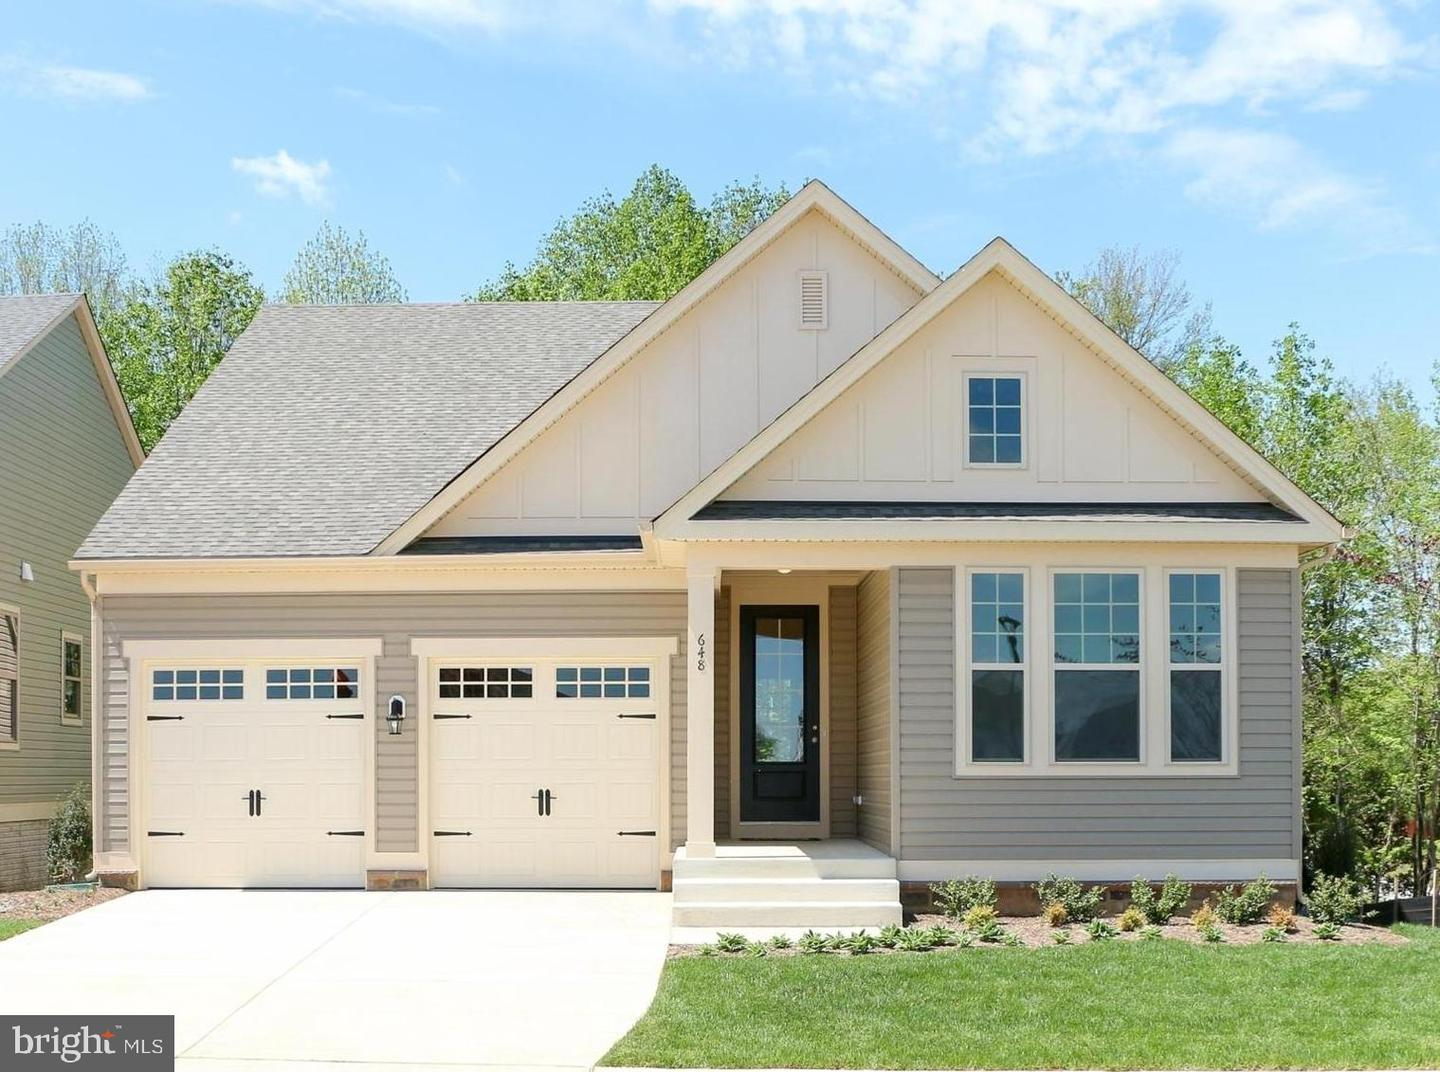 Single Family for Sale at 648 Crab Apple Dr Stafford, Virginia 22554 United States